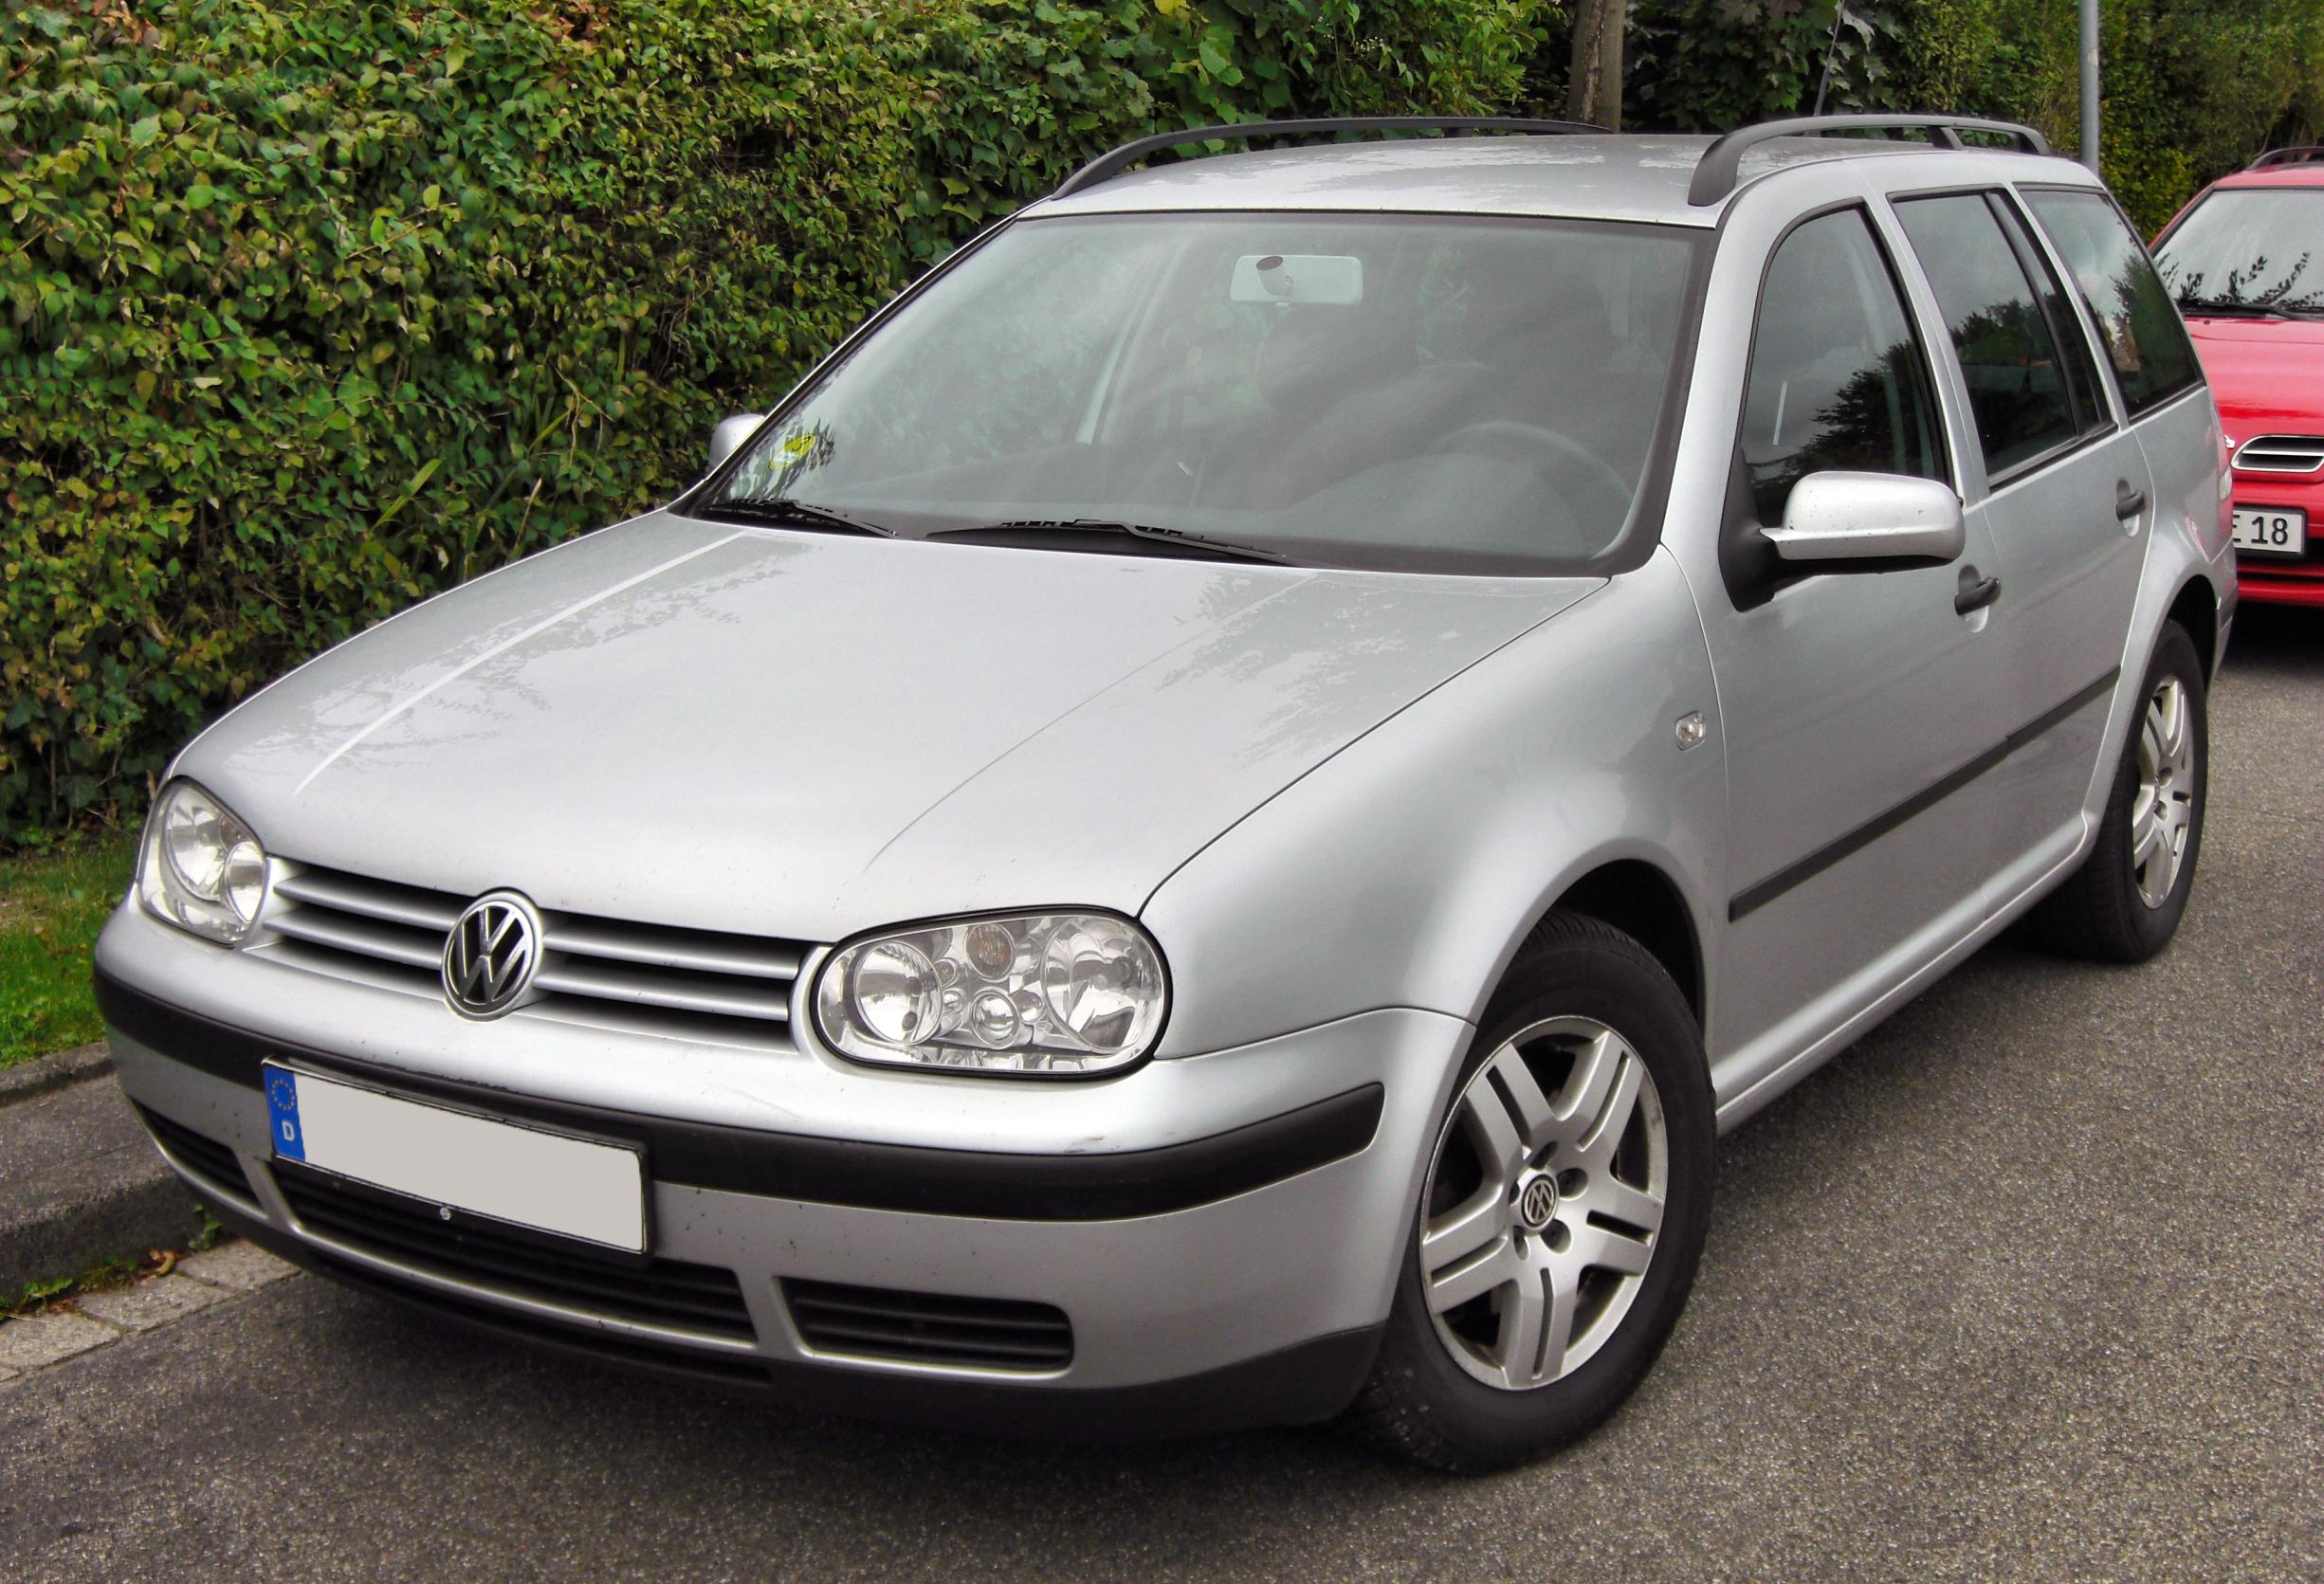 2005 volkswagen golf v variant pictures information and specs auto. Black Bedroom Furniture Sets. Home Design Ideas